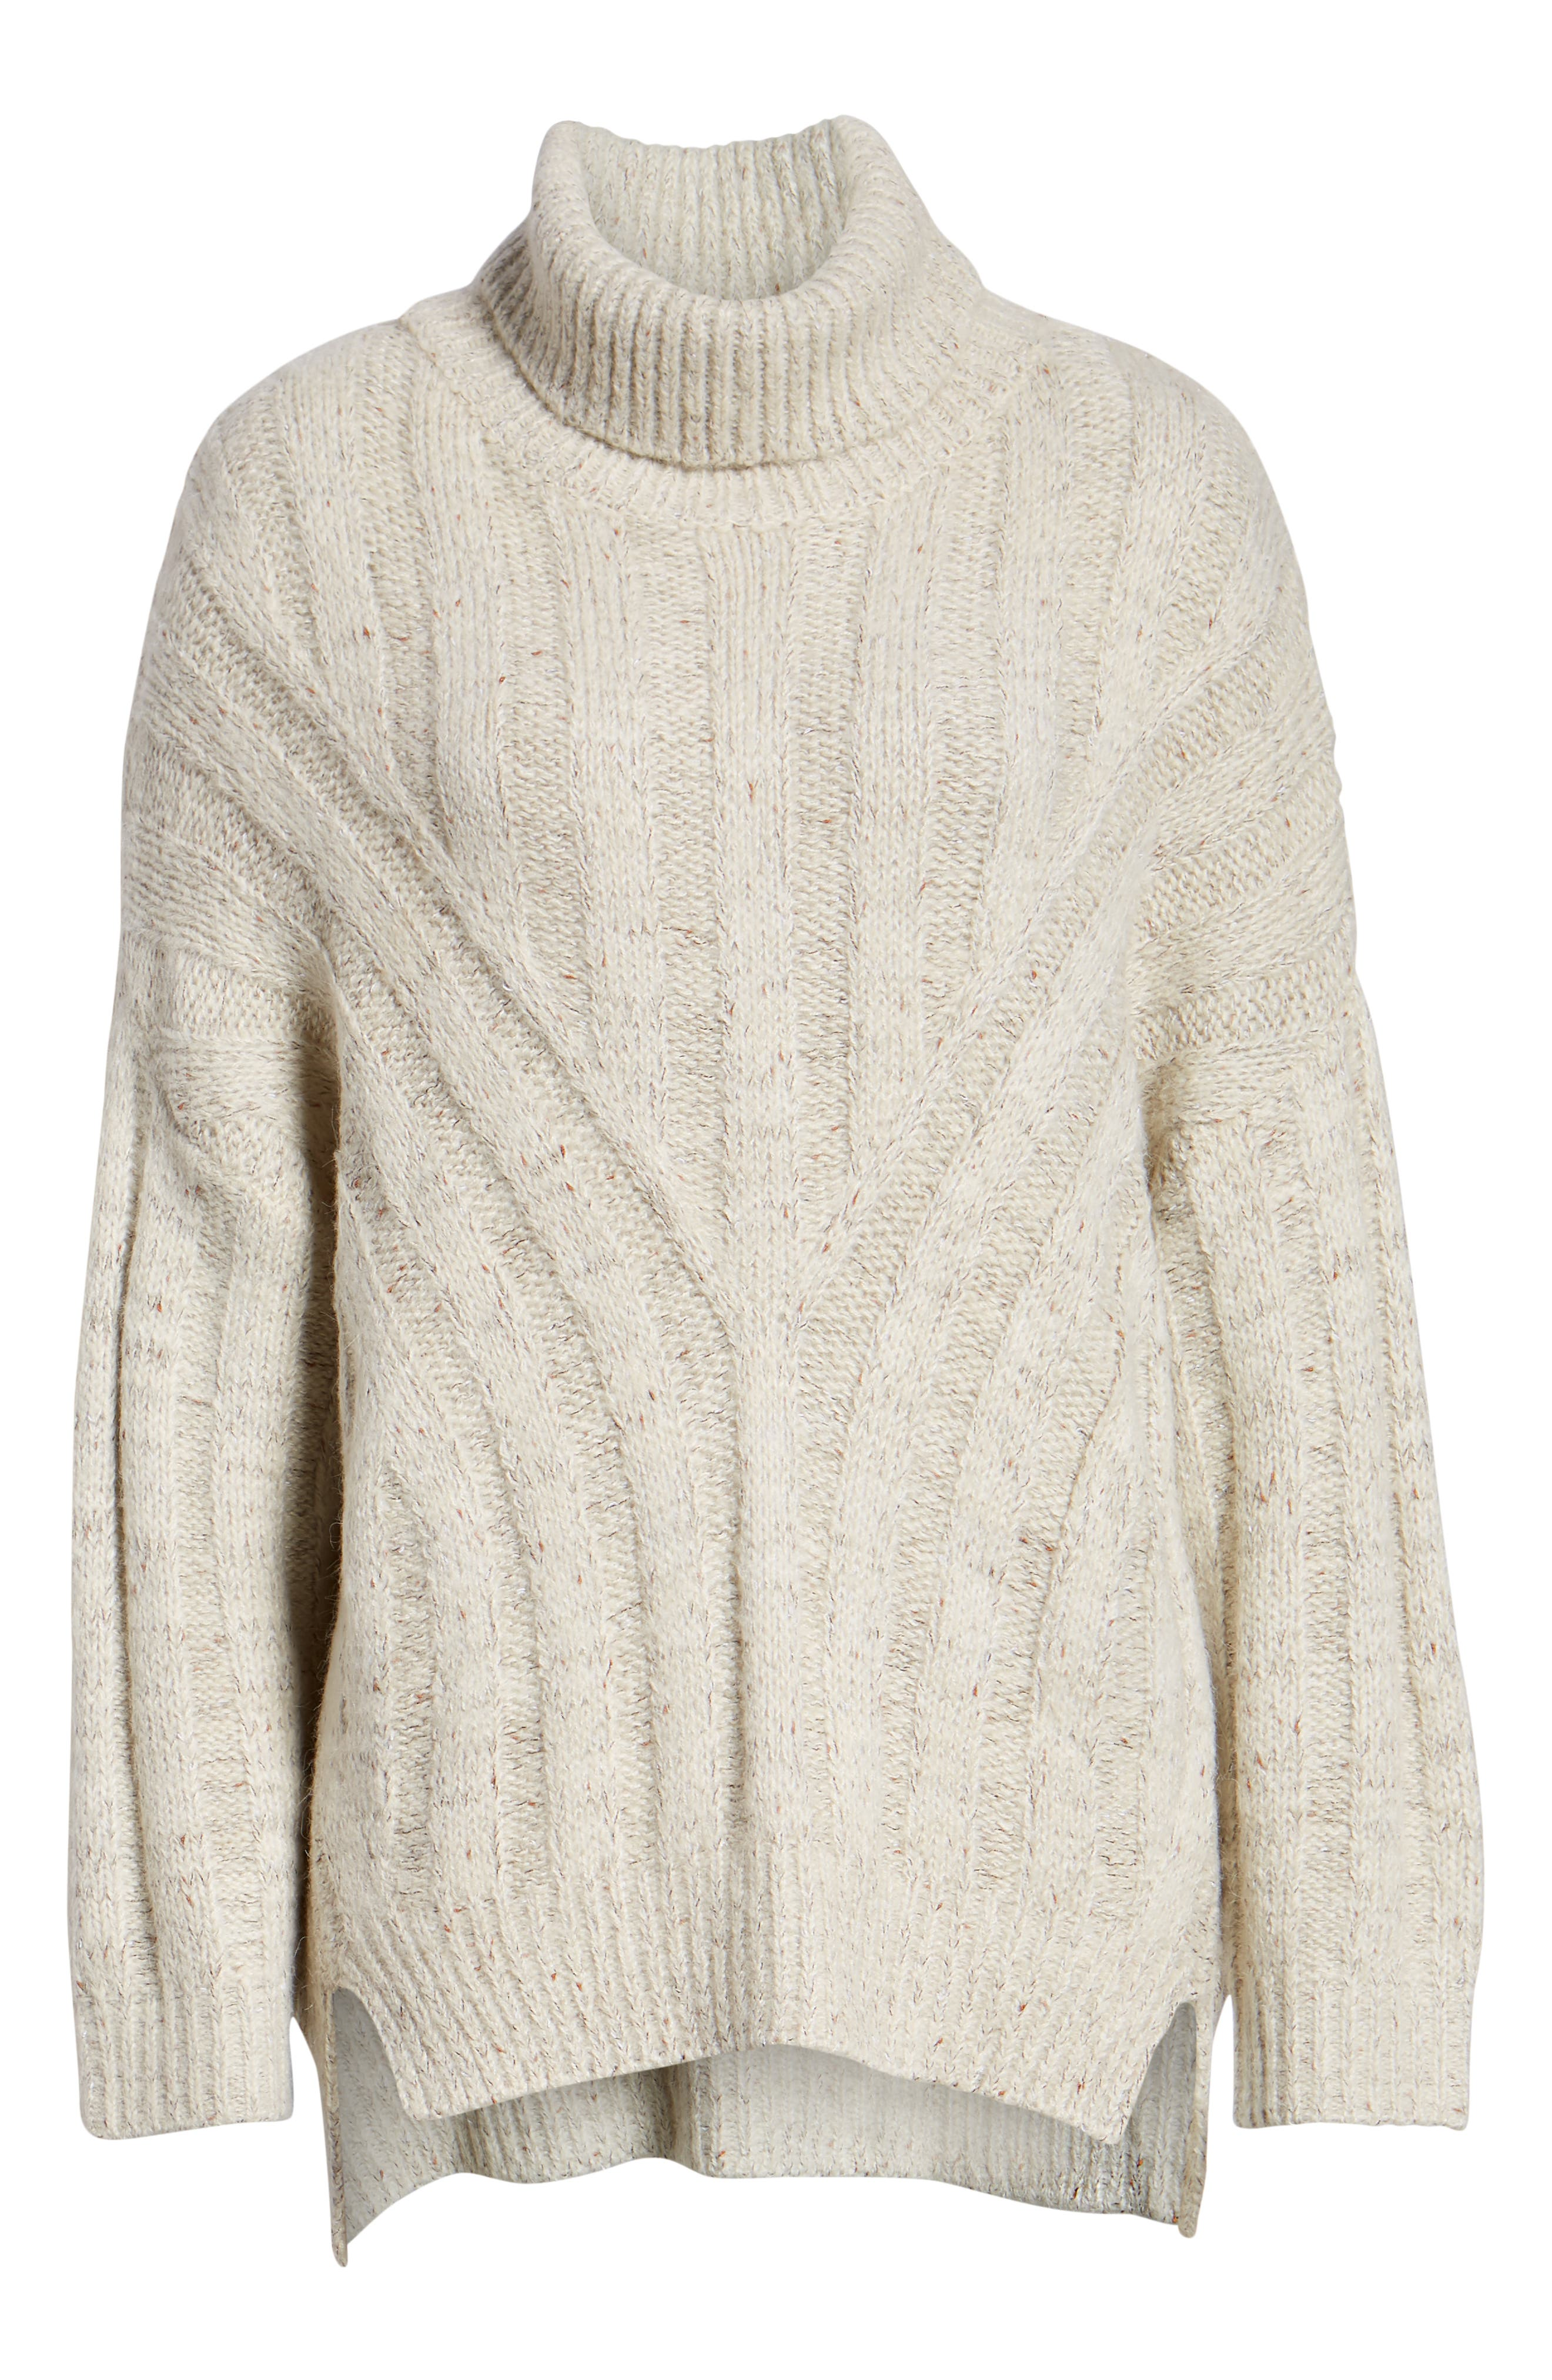 Oversized Turtleneck Sweater,                             Alternate thumbnail 6, color,                             250